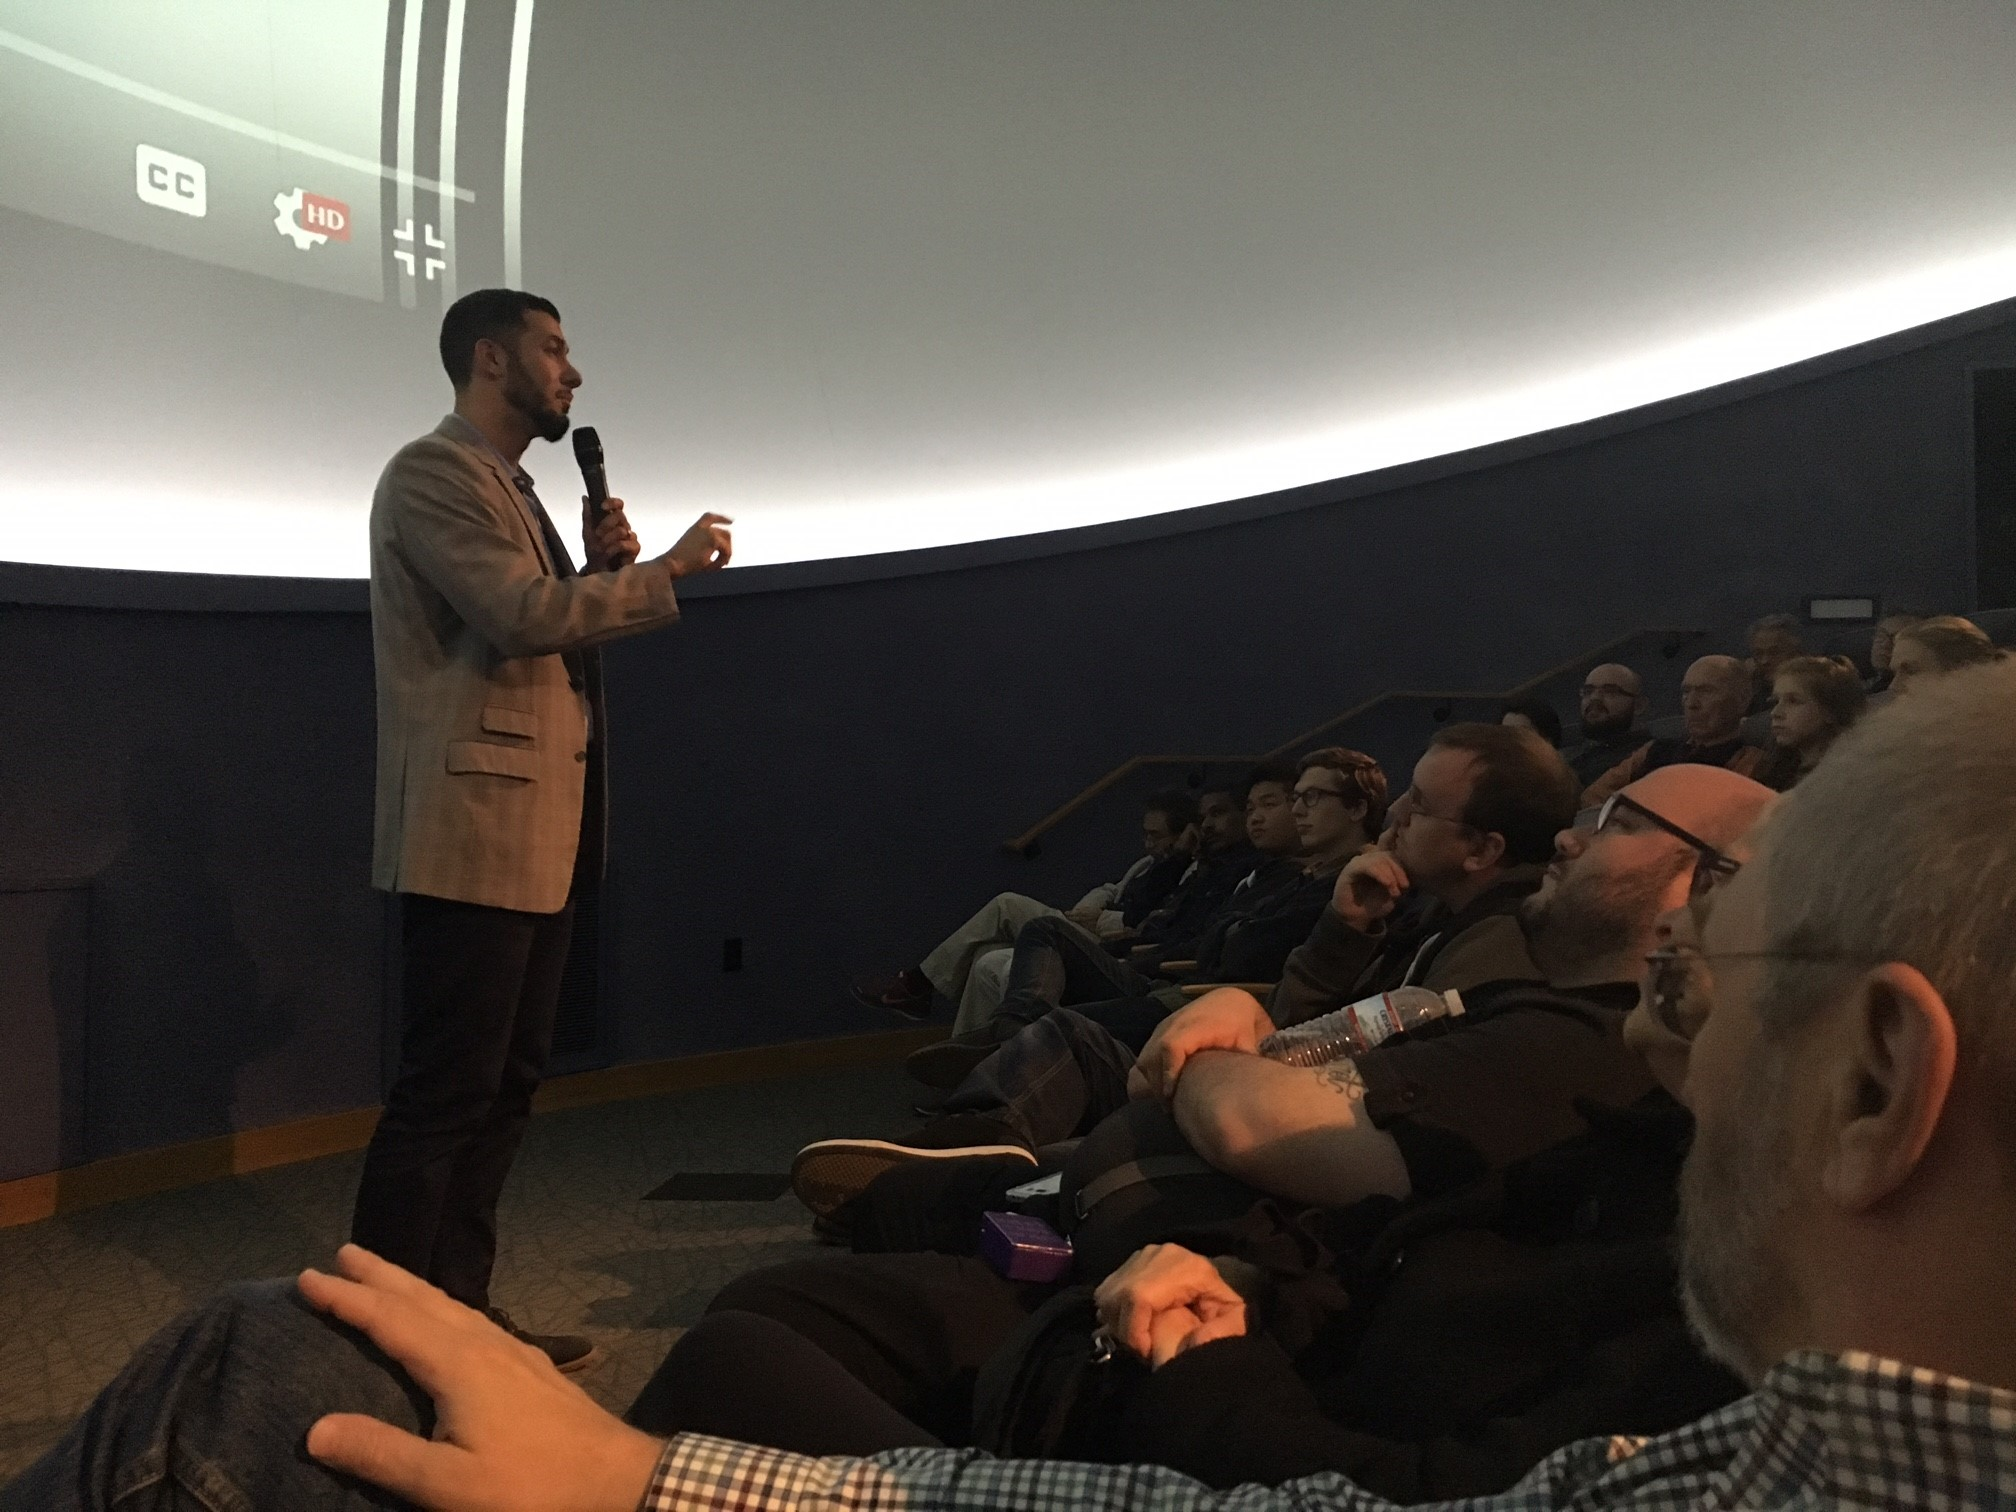 Image of a man standing before a group of interested attendees watching a screen.